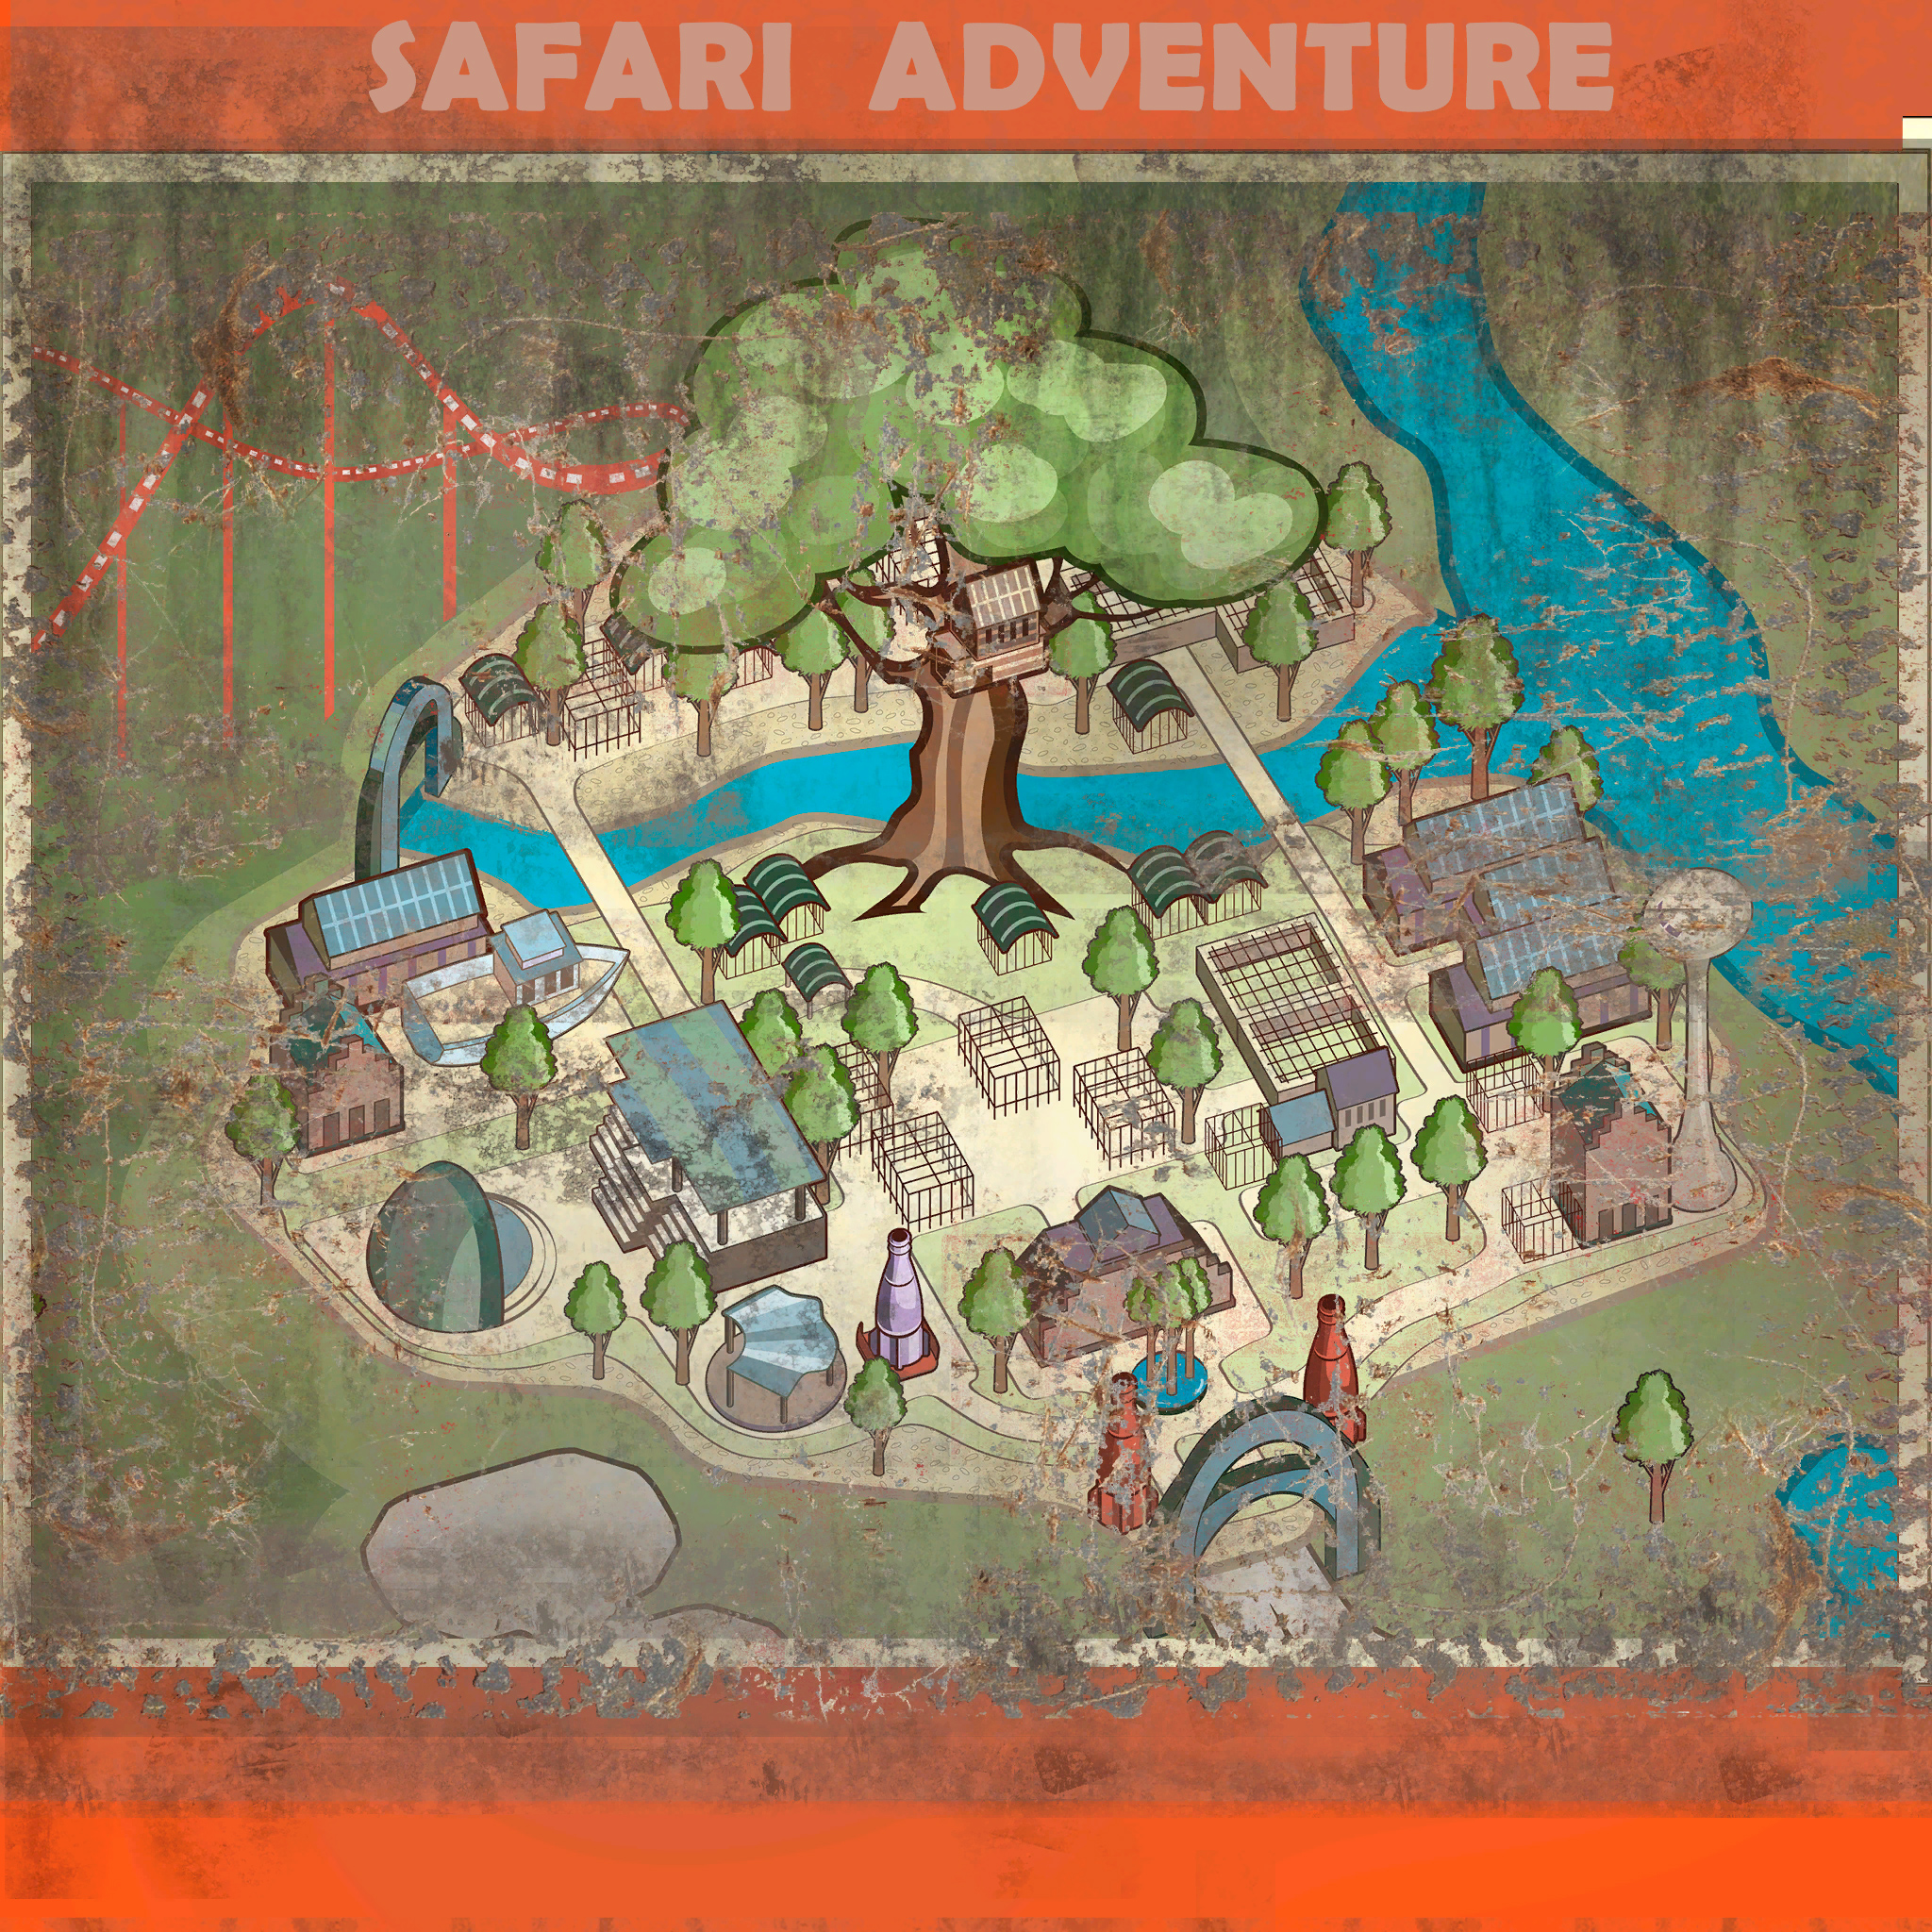 ref id Safari Adventure Fallout Wiki